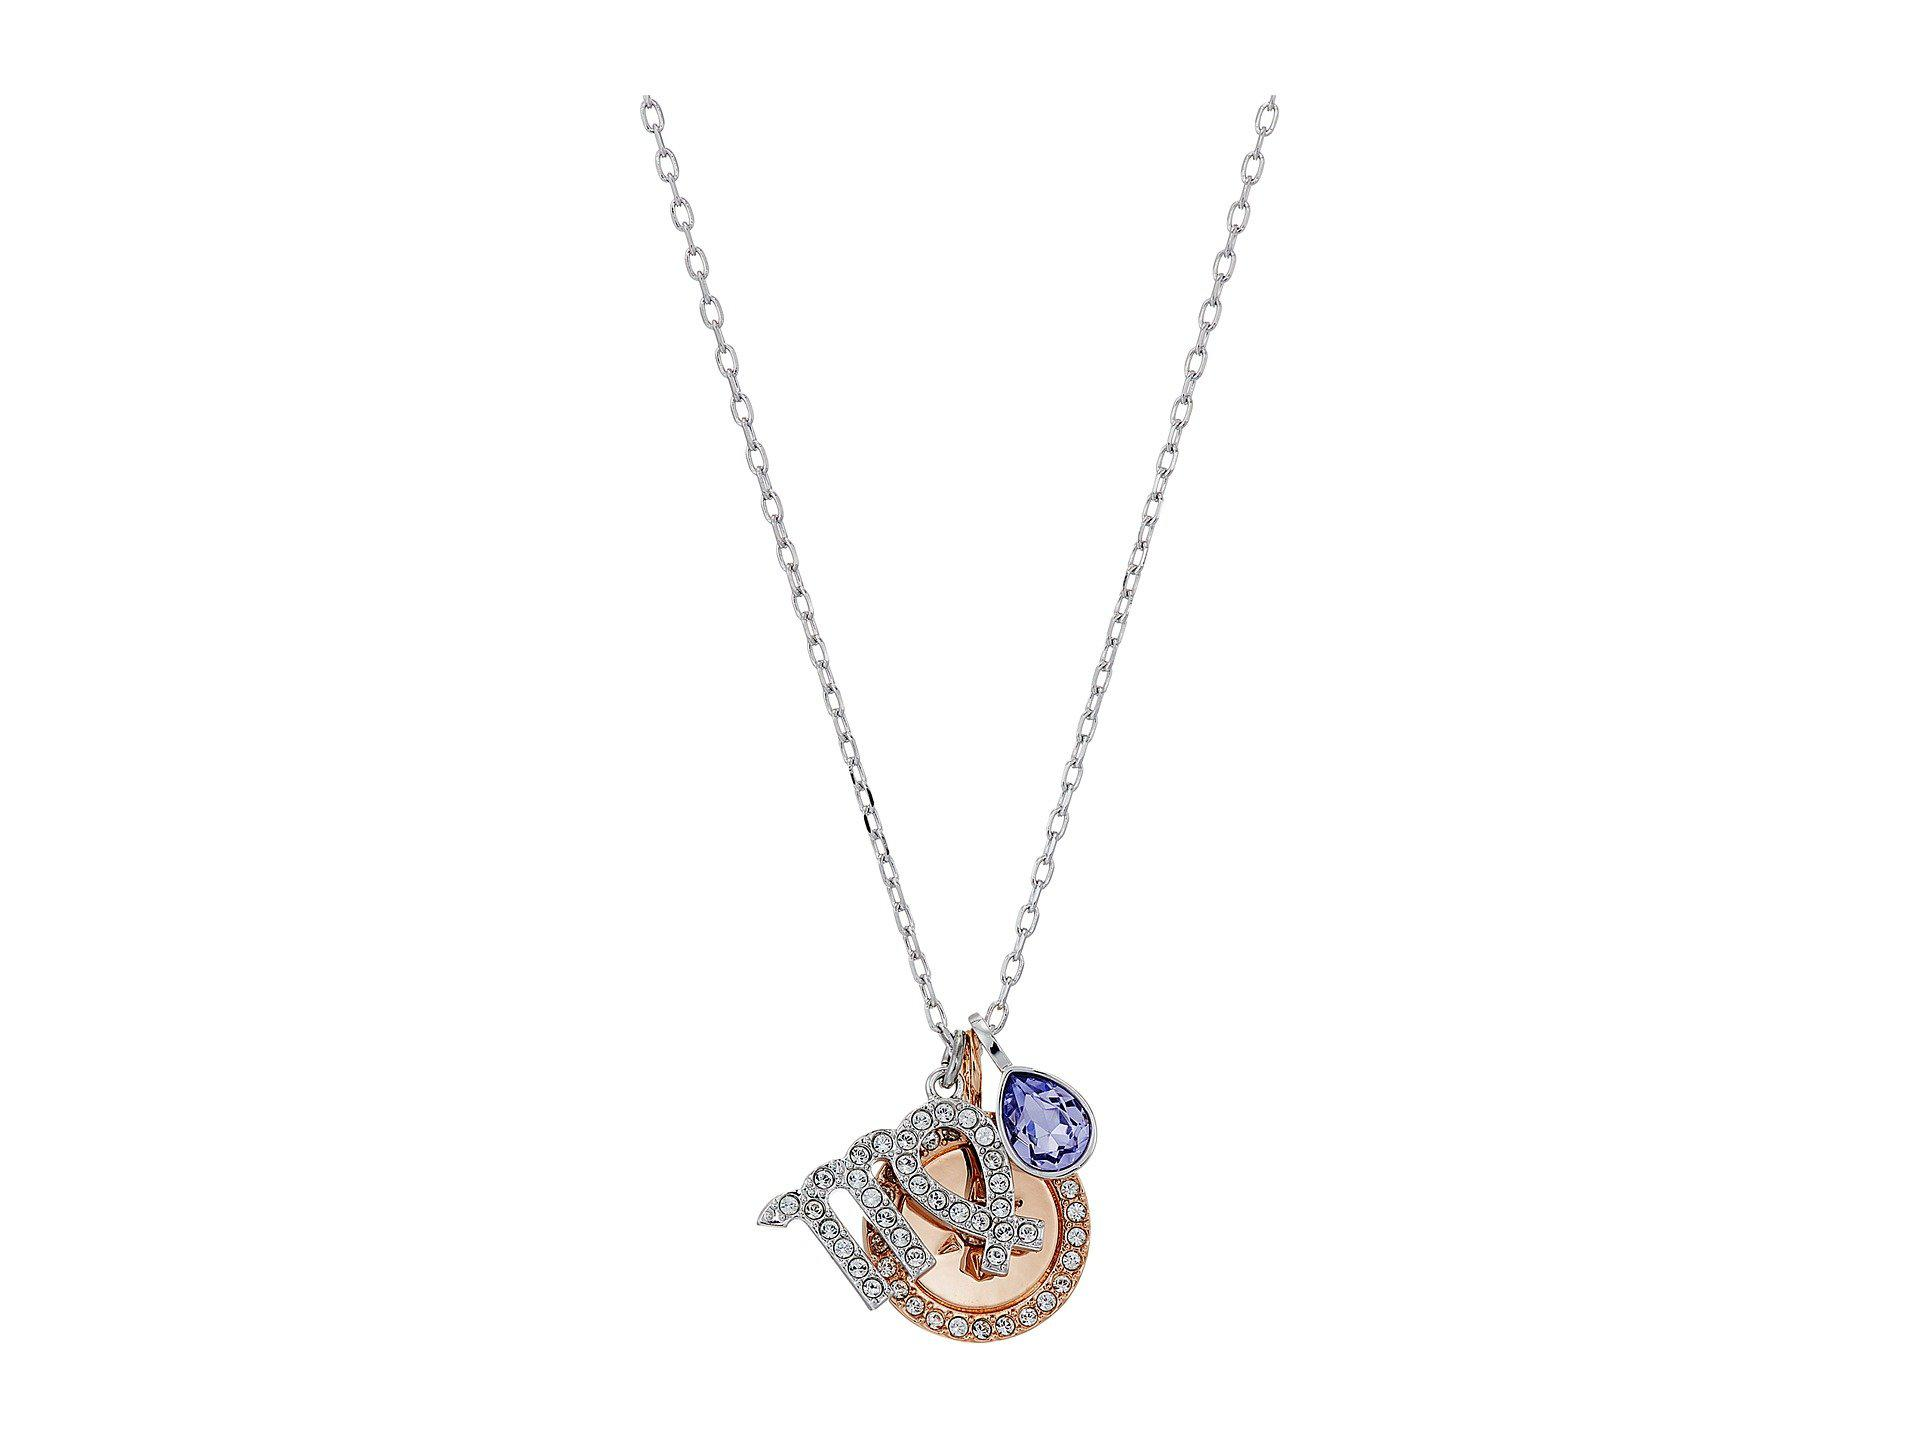 ssn virgo victoria necklace products g pendant emerson